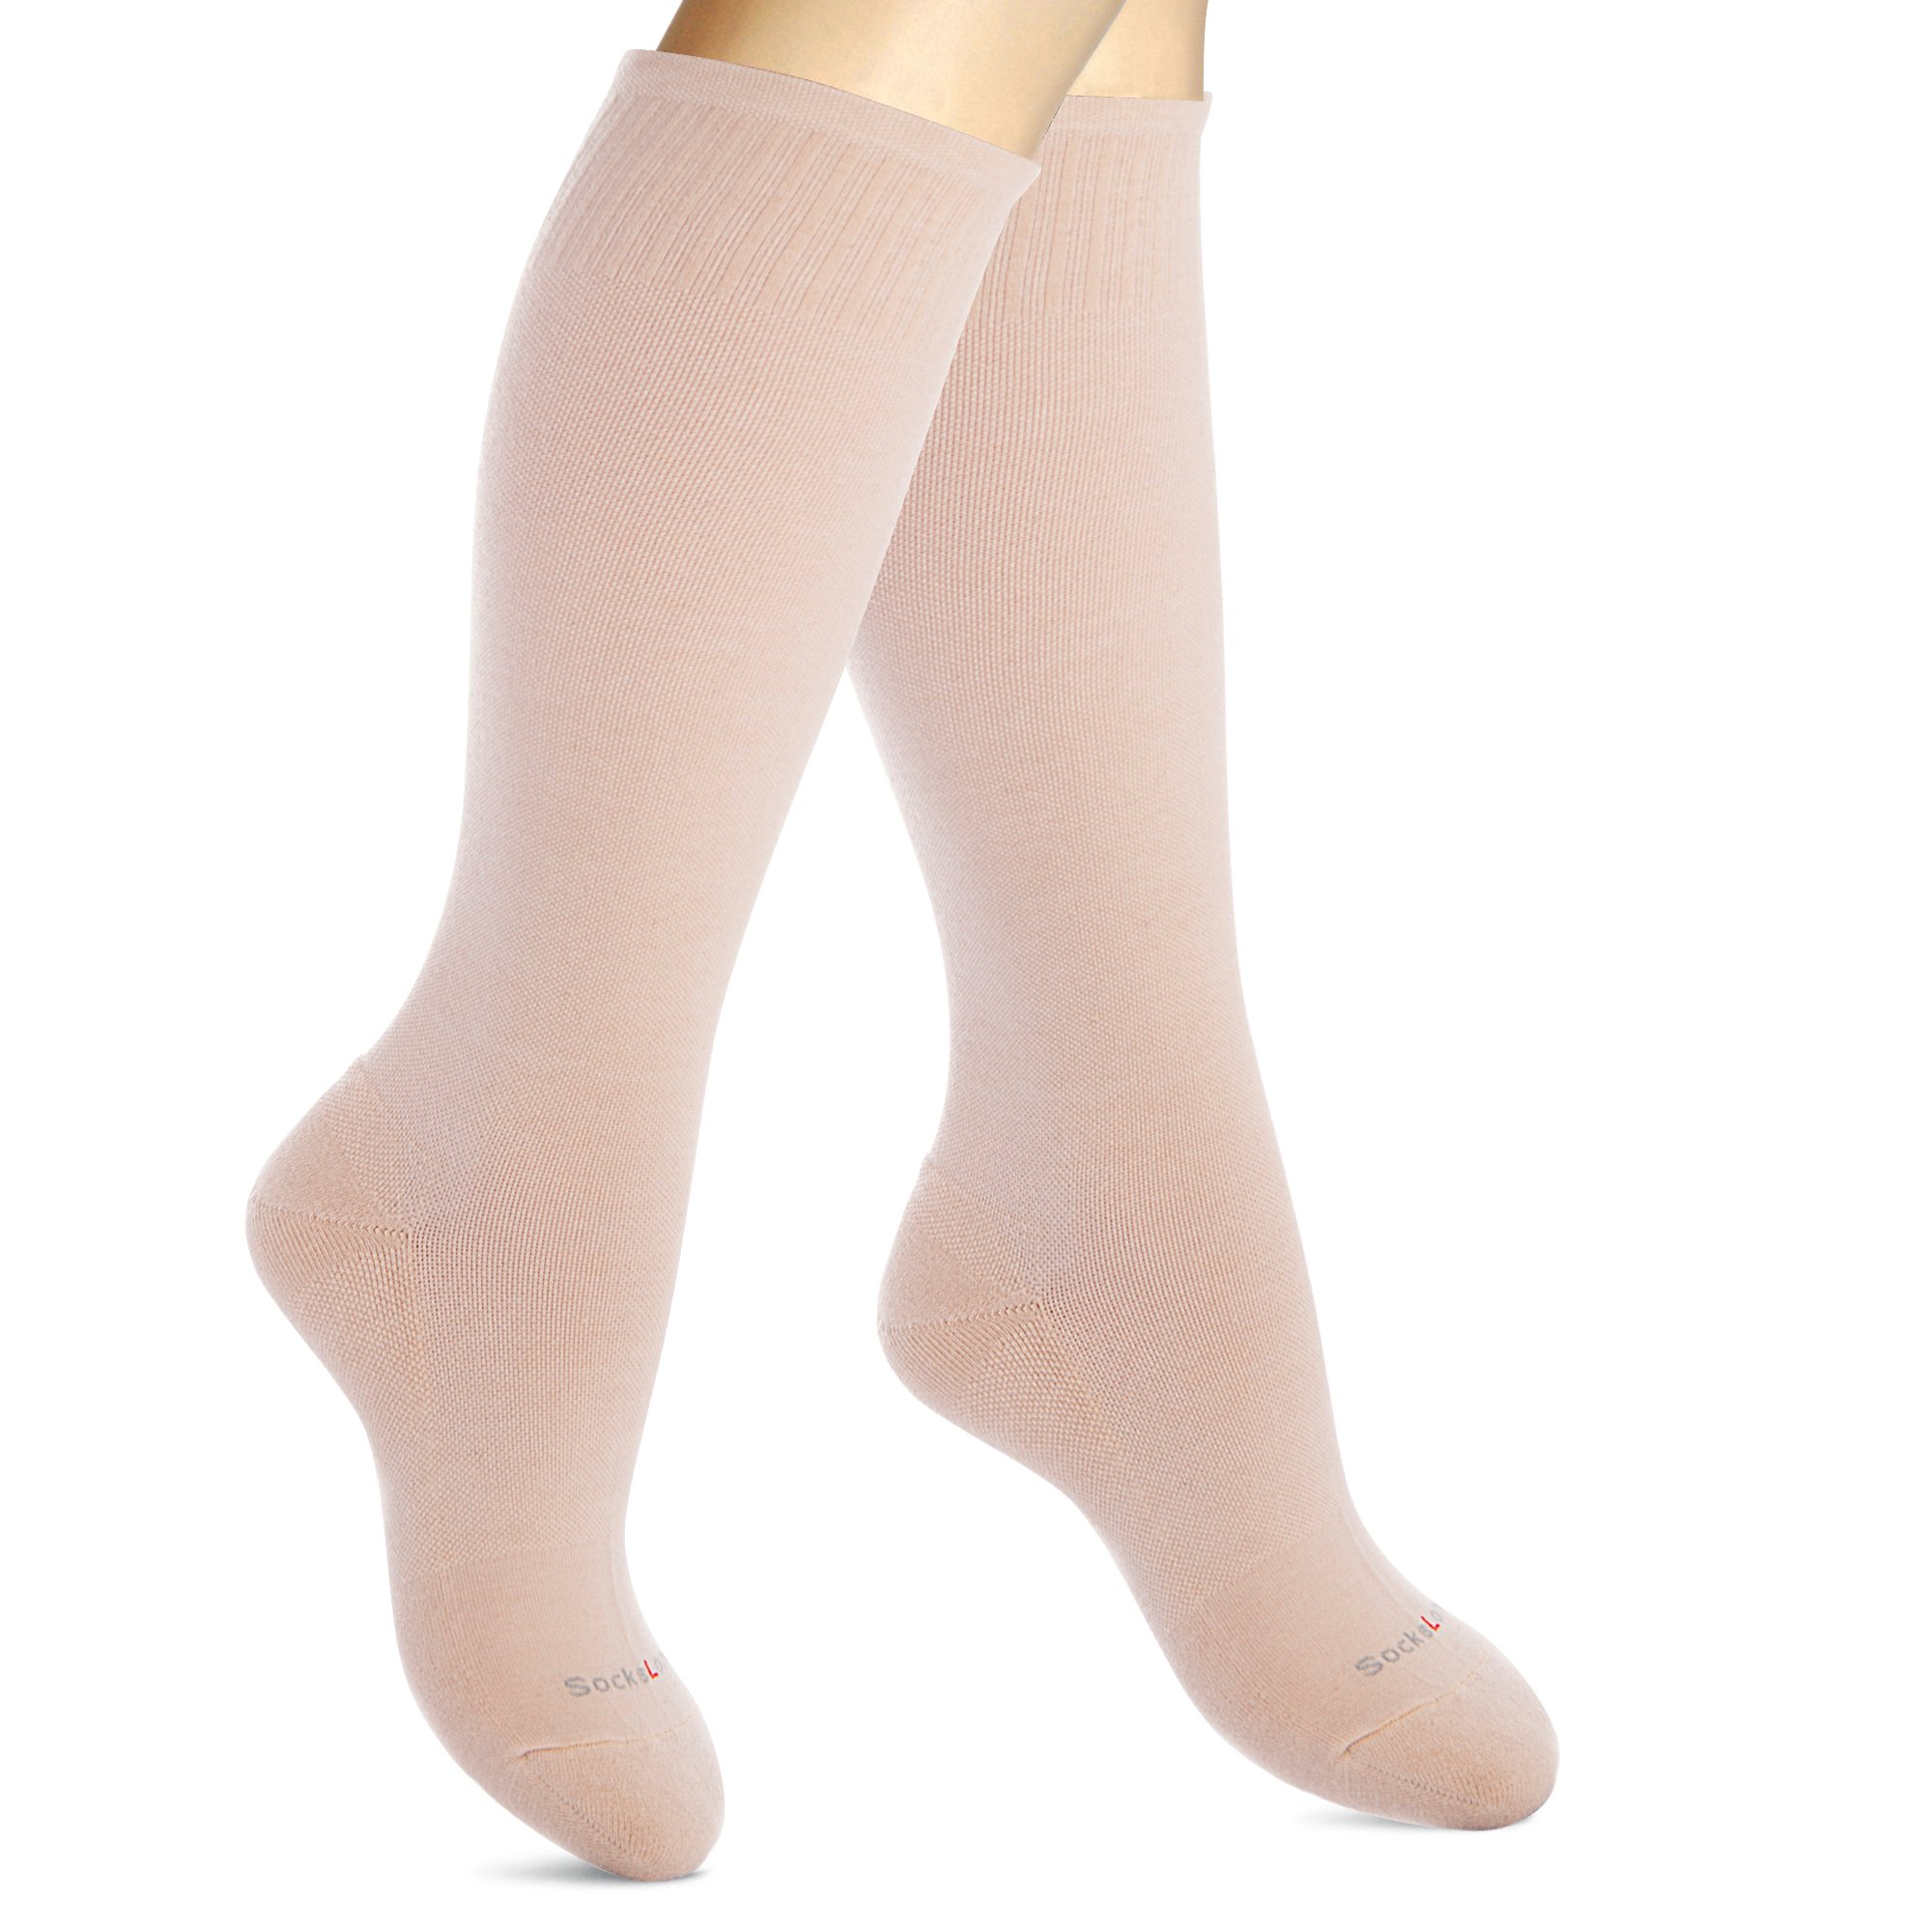 Cotton Compression Socks for Women. Graduated Stockings for Travel, Flight, Pregnancy, Nurses, Maternity, Varicose Veins, Calf Support. 15-20 mmHg Airplane Traveling Hose. Knee High 1 Pair